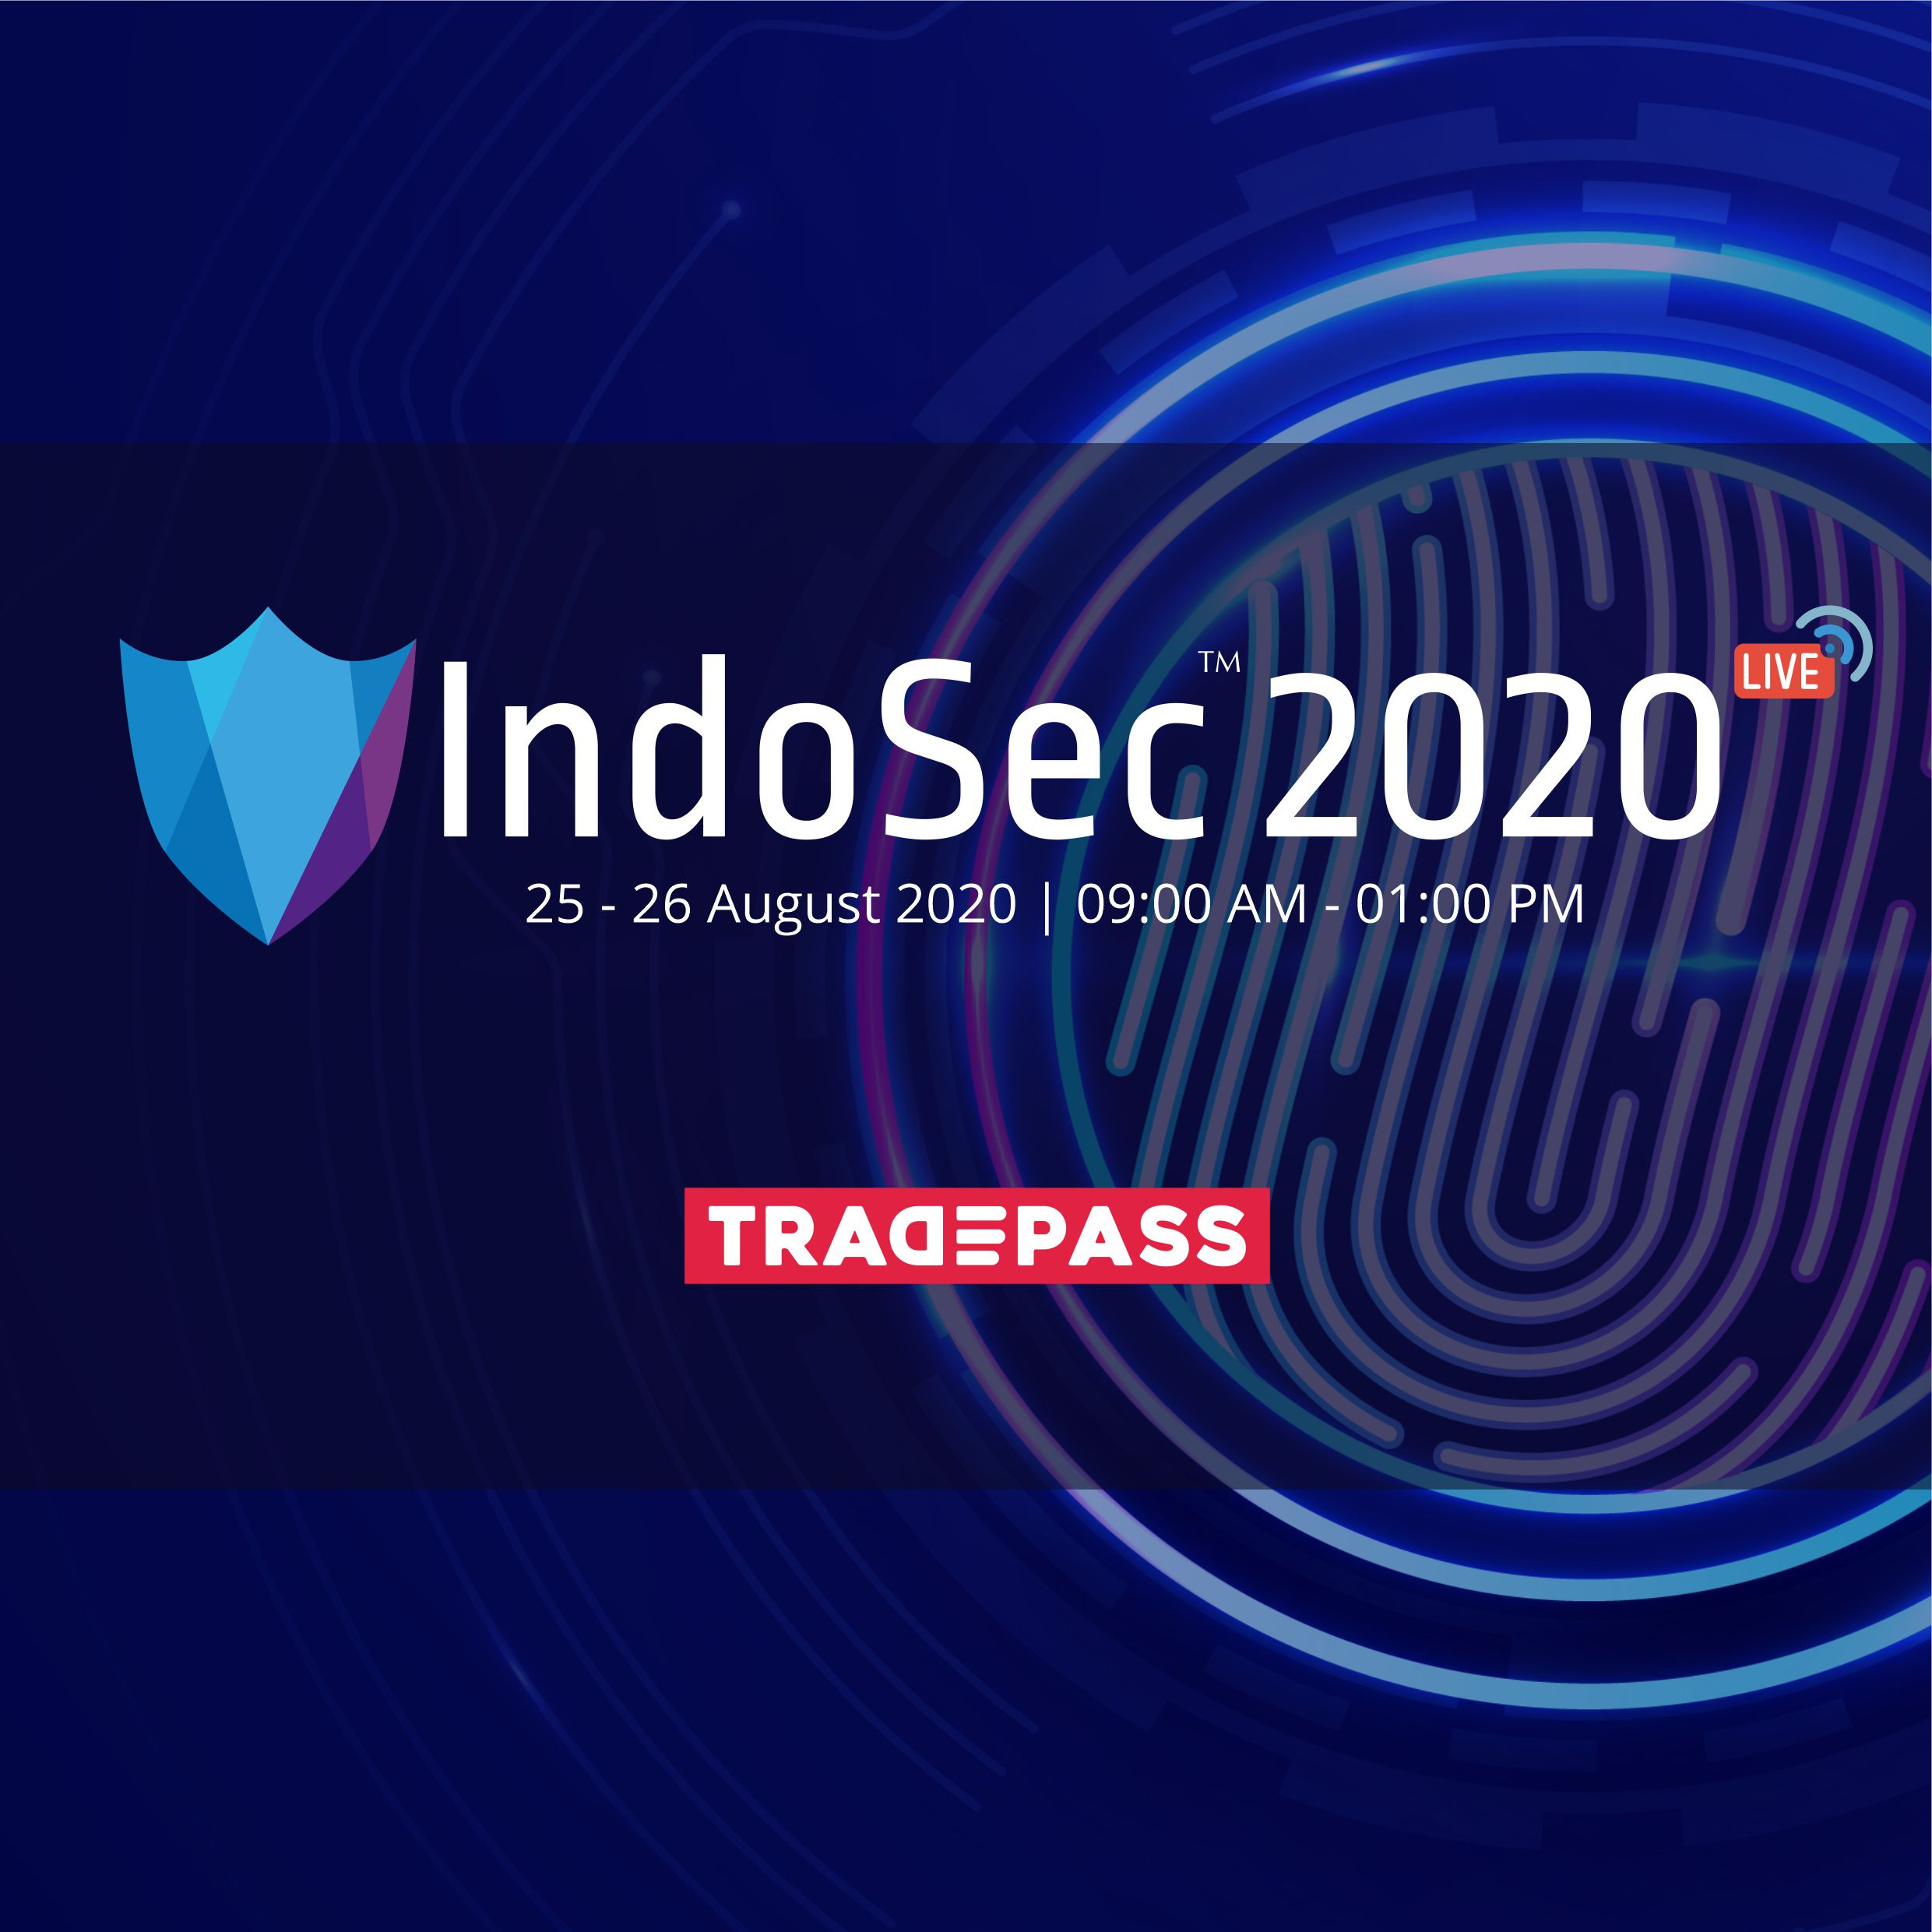 Article about 3rd Annual IndoSec Summit LIVE